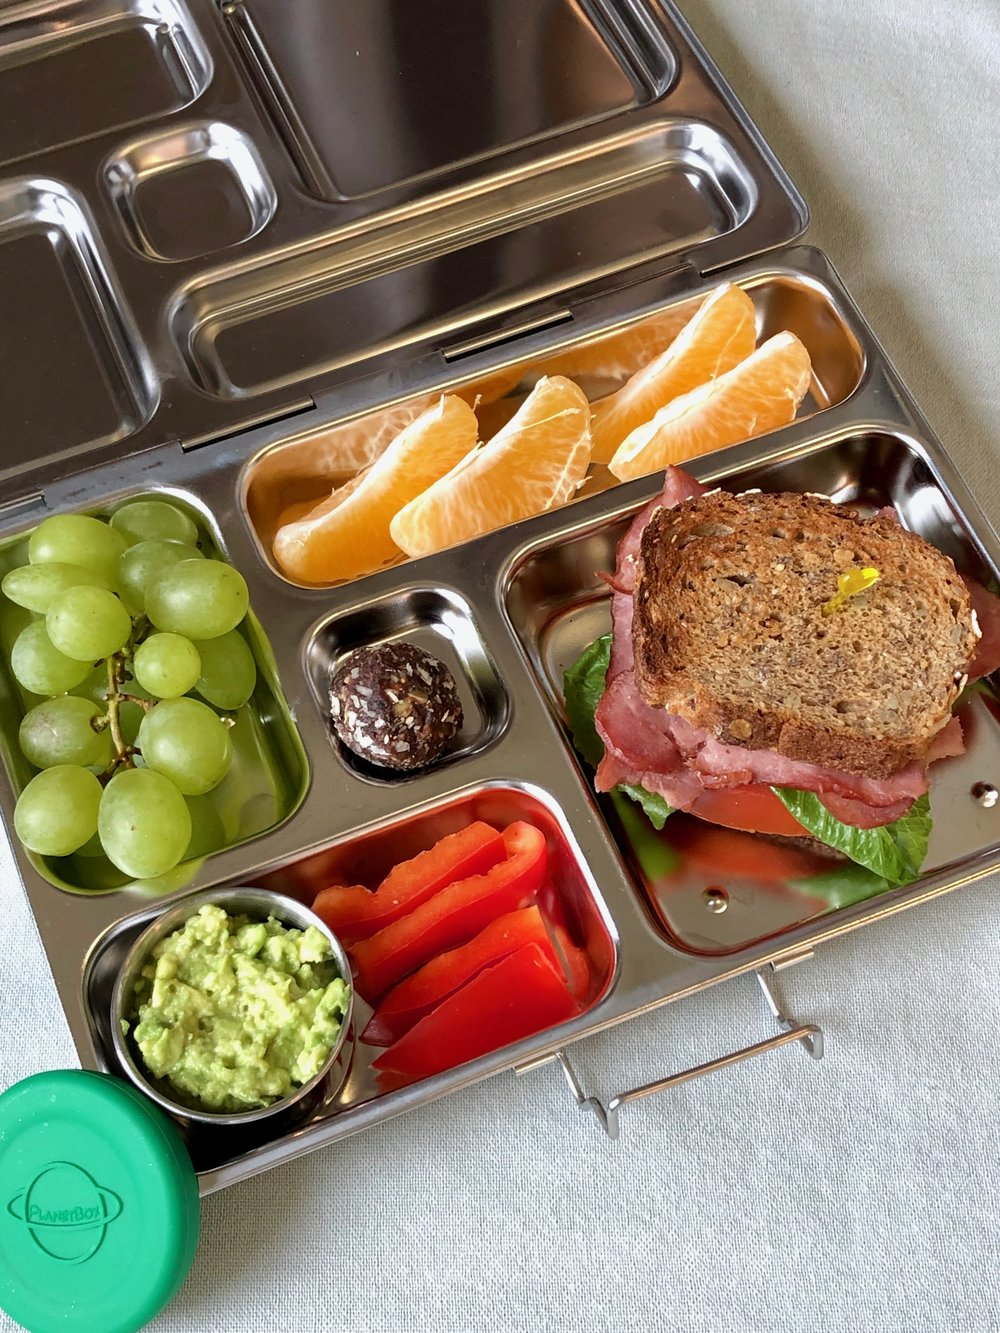 In the lunchbox: Turkey BLT with guacamole and peppers, grapes and orange.